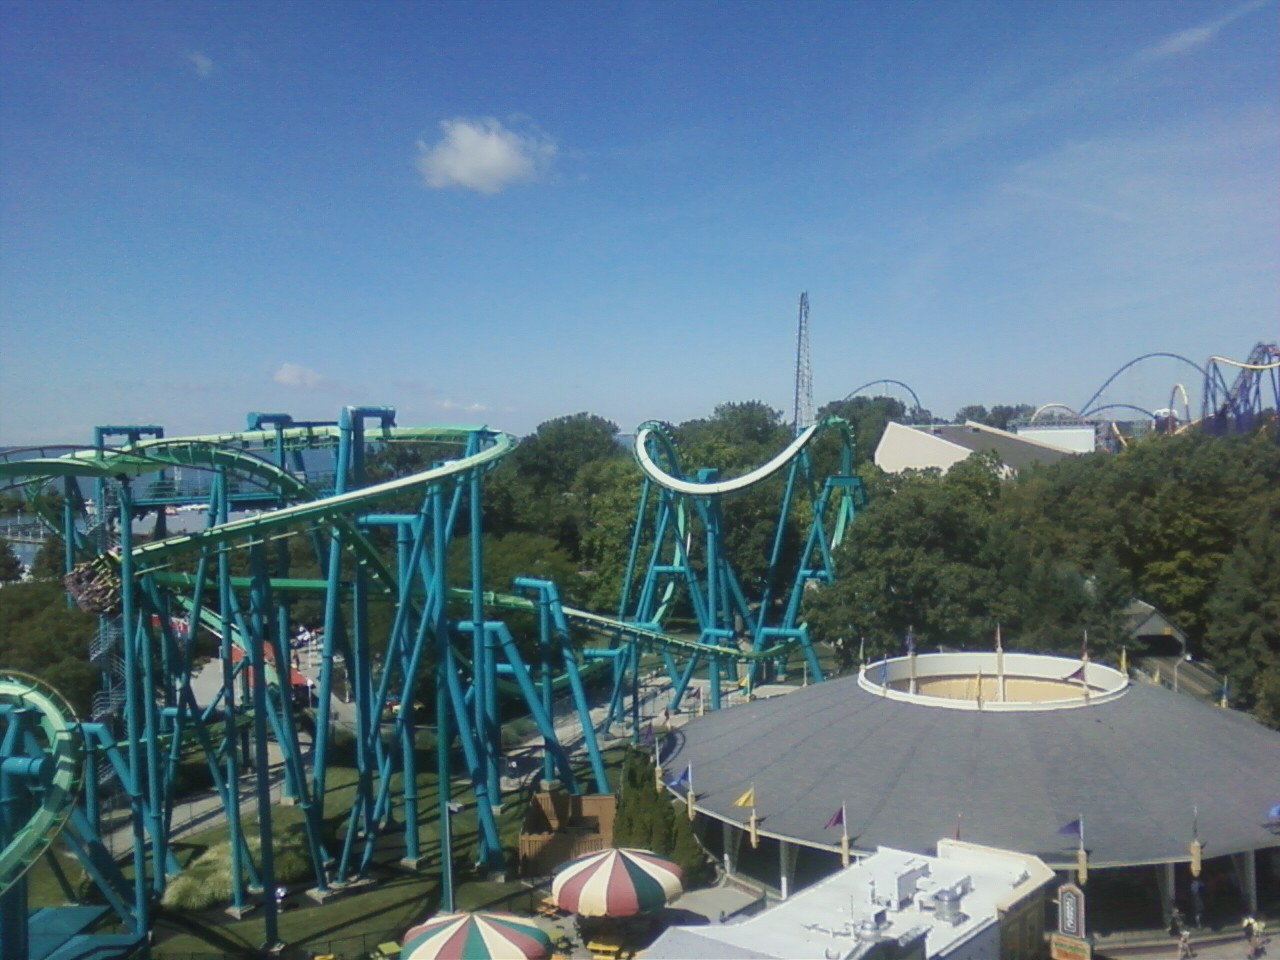 cedar point latino personals Get the cedar point weather forecast access hourly, 10 day and 15 day forecasts along with up to the minute reports and videos for cedar point, oh 44870 from accuweathercom.